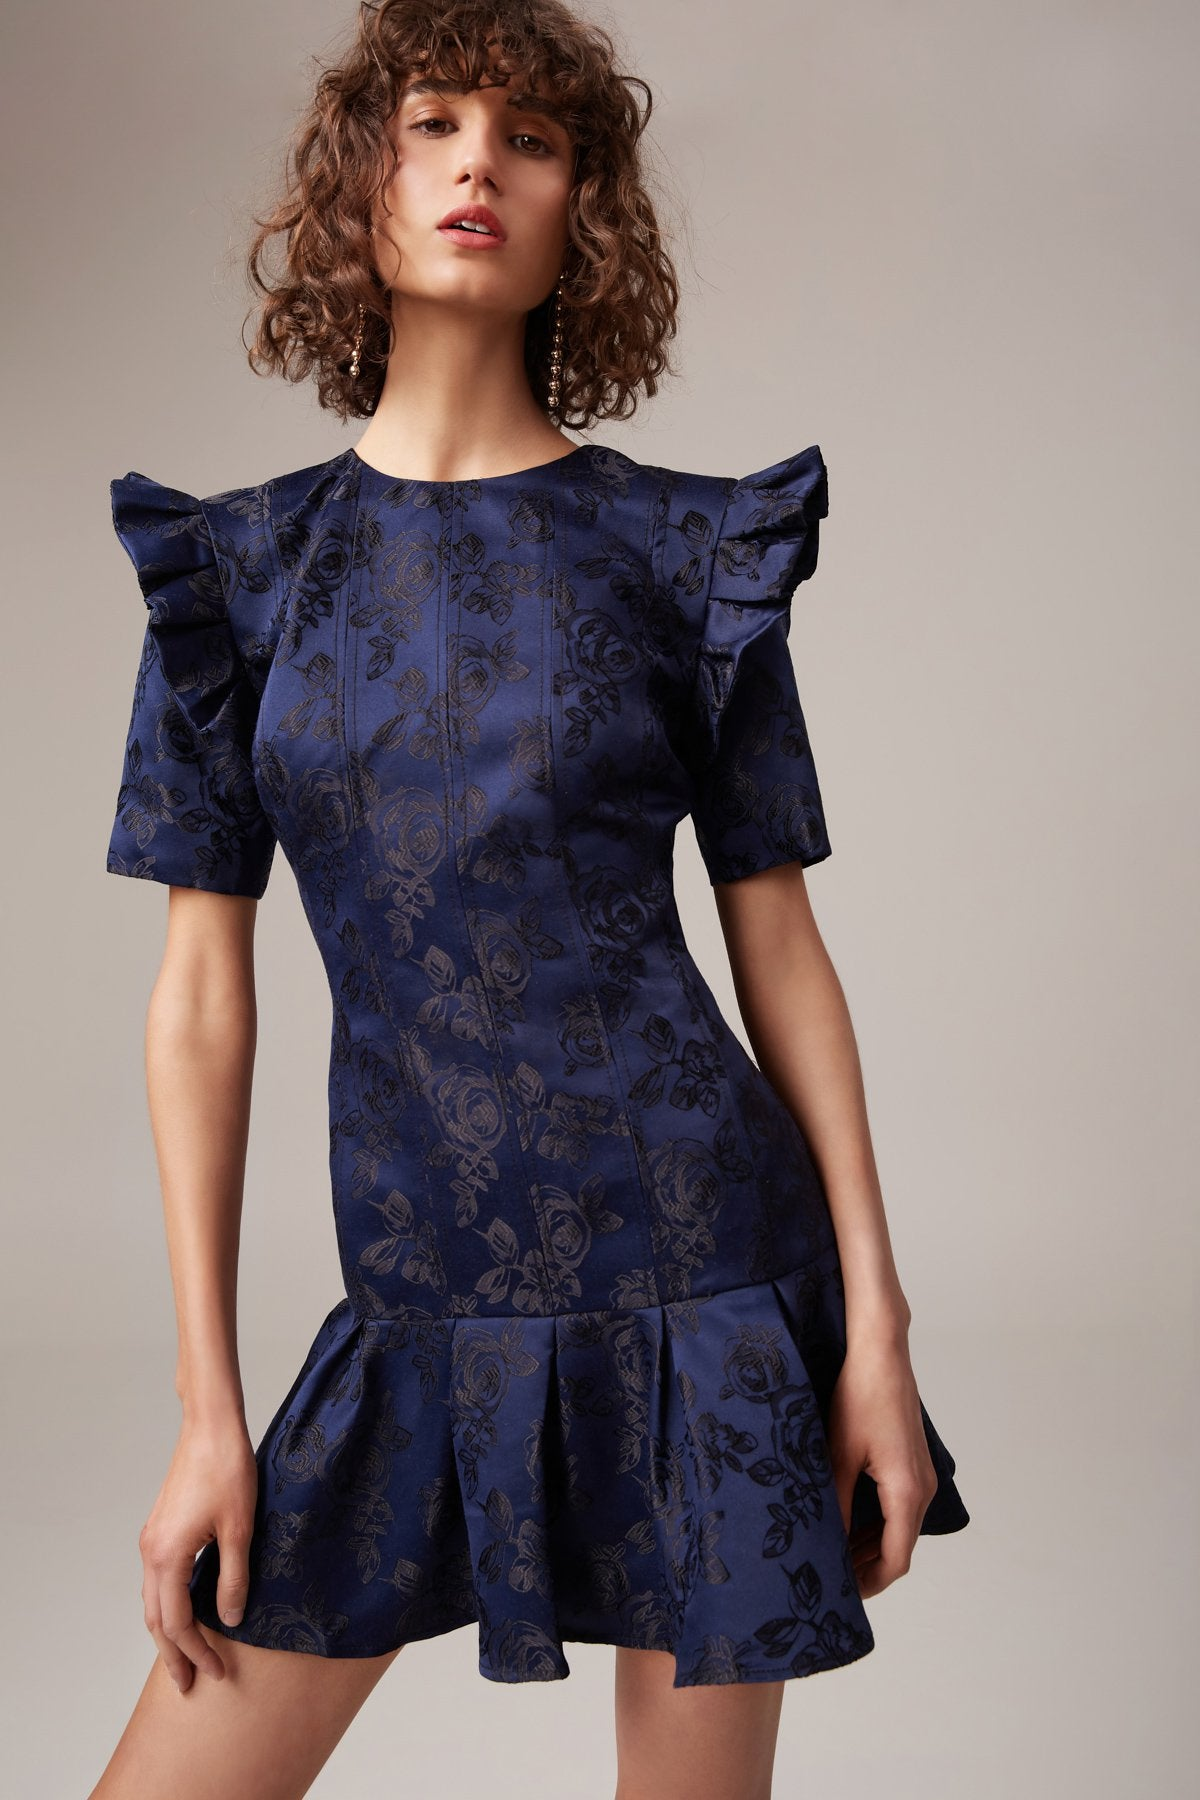 LEVITY MINI DRESS navy